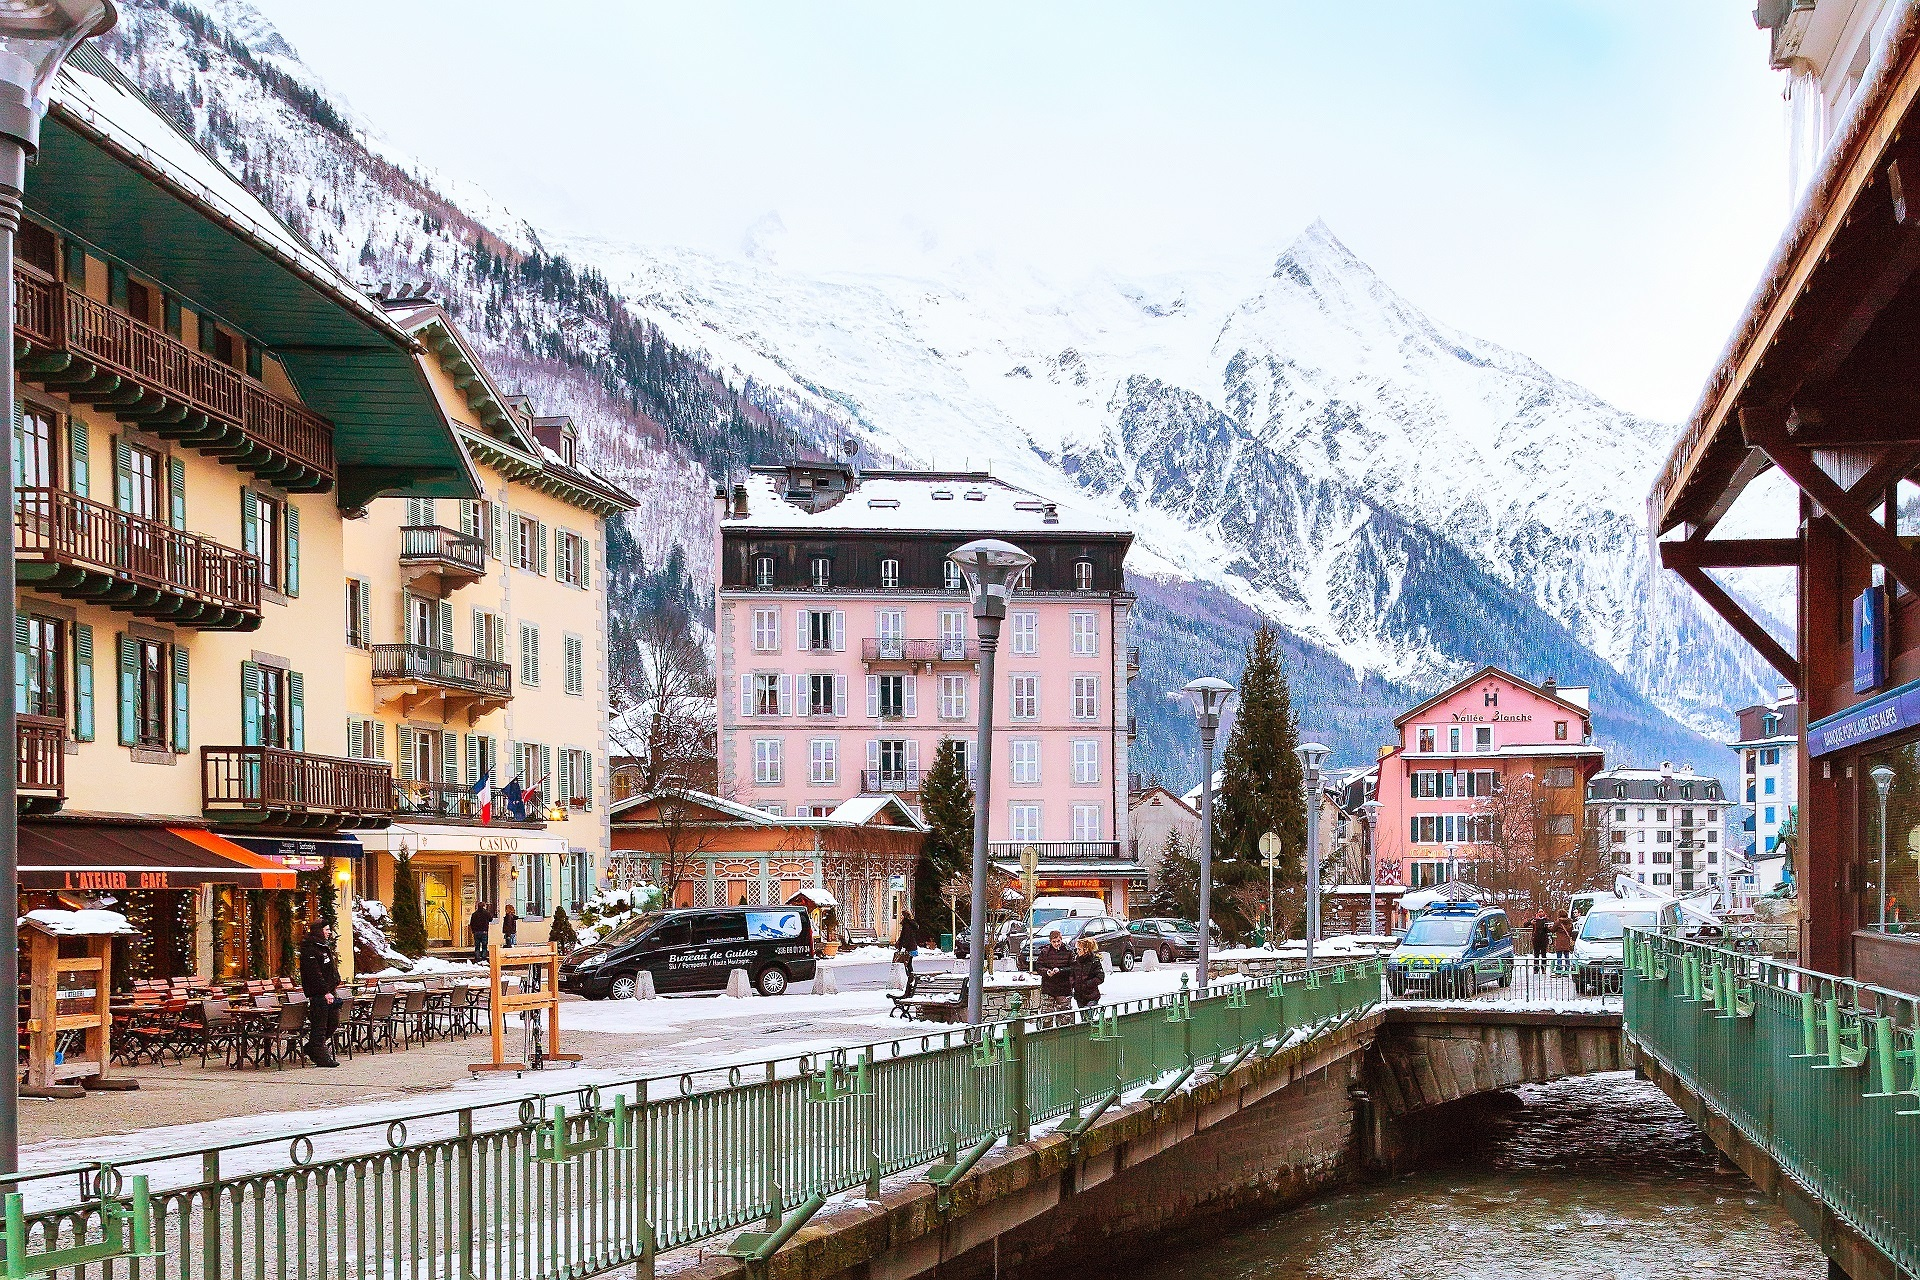 Street view in Chamonix town, French Alps, France